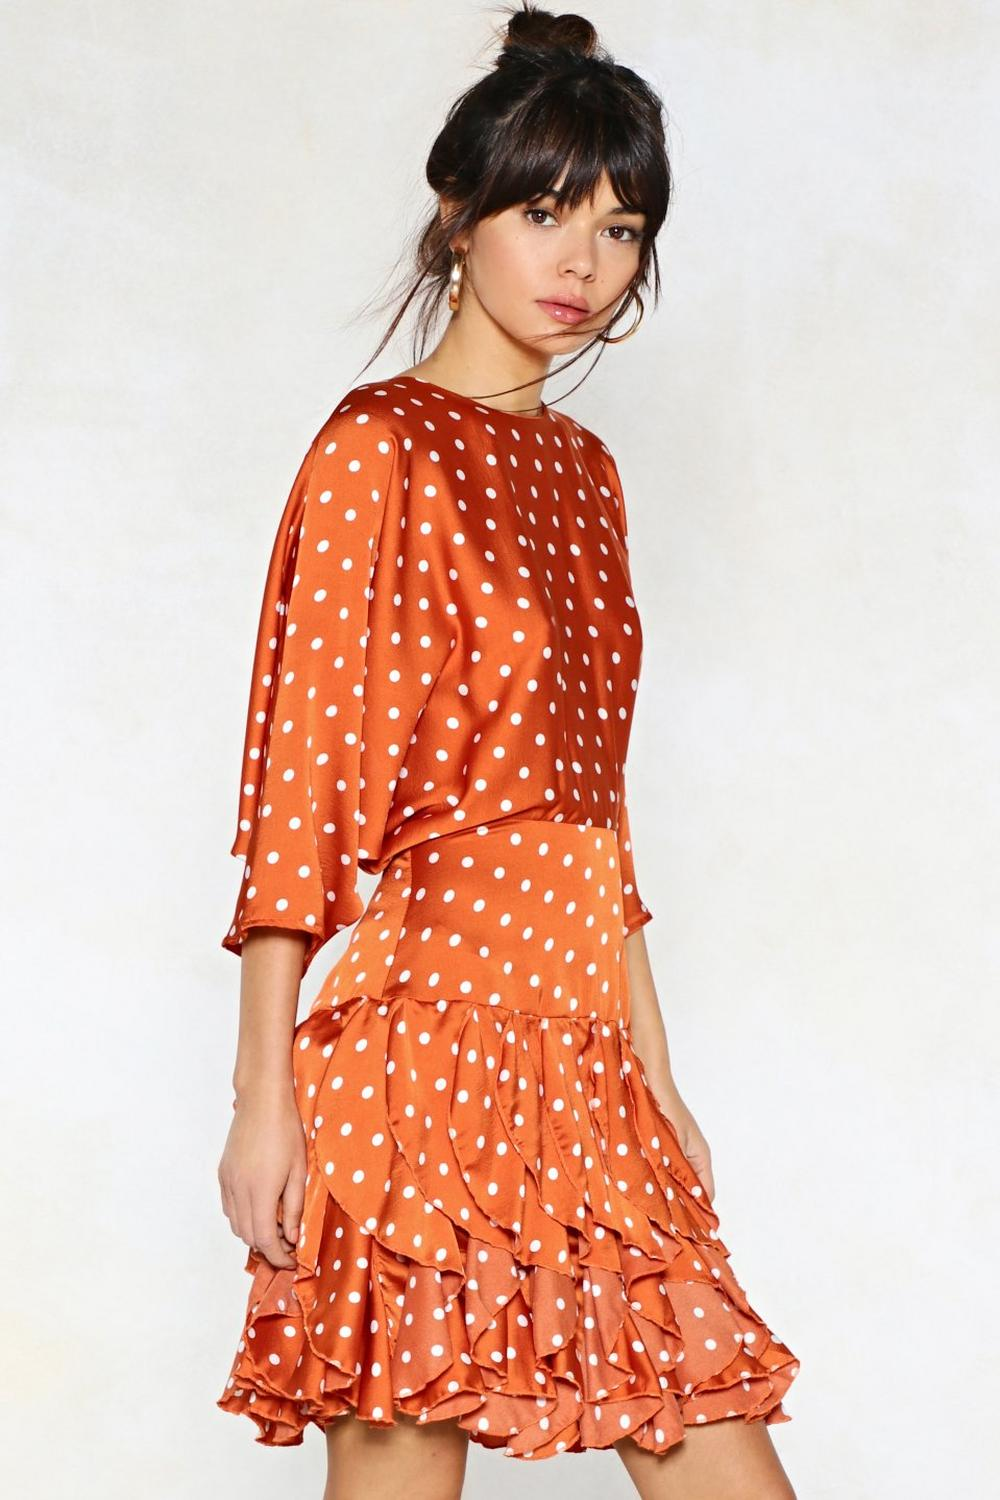 57ad6c56cc2a Dot to Have Your Love Polka Dot Dress | Shop Clothes at Nasty Gal!